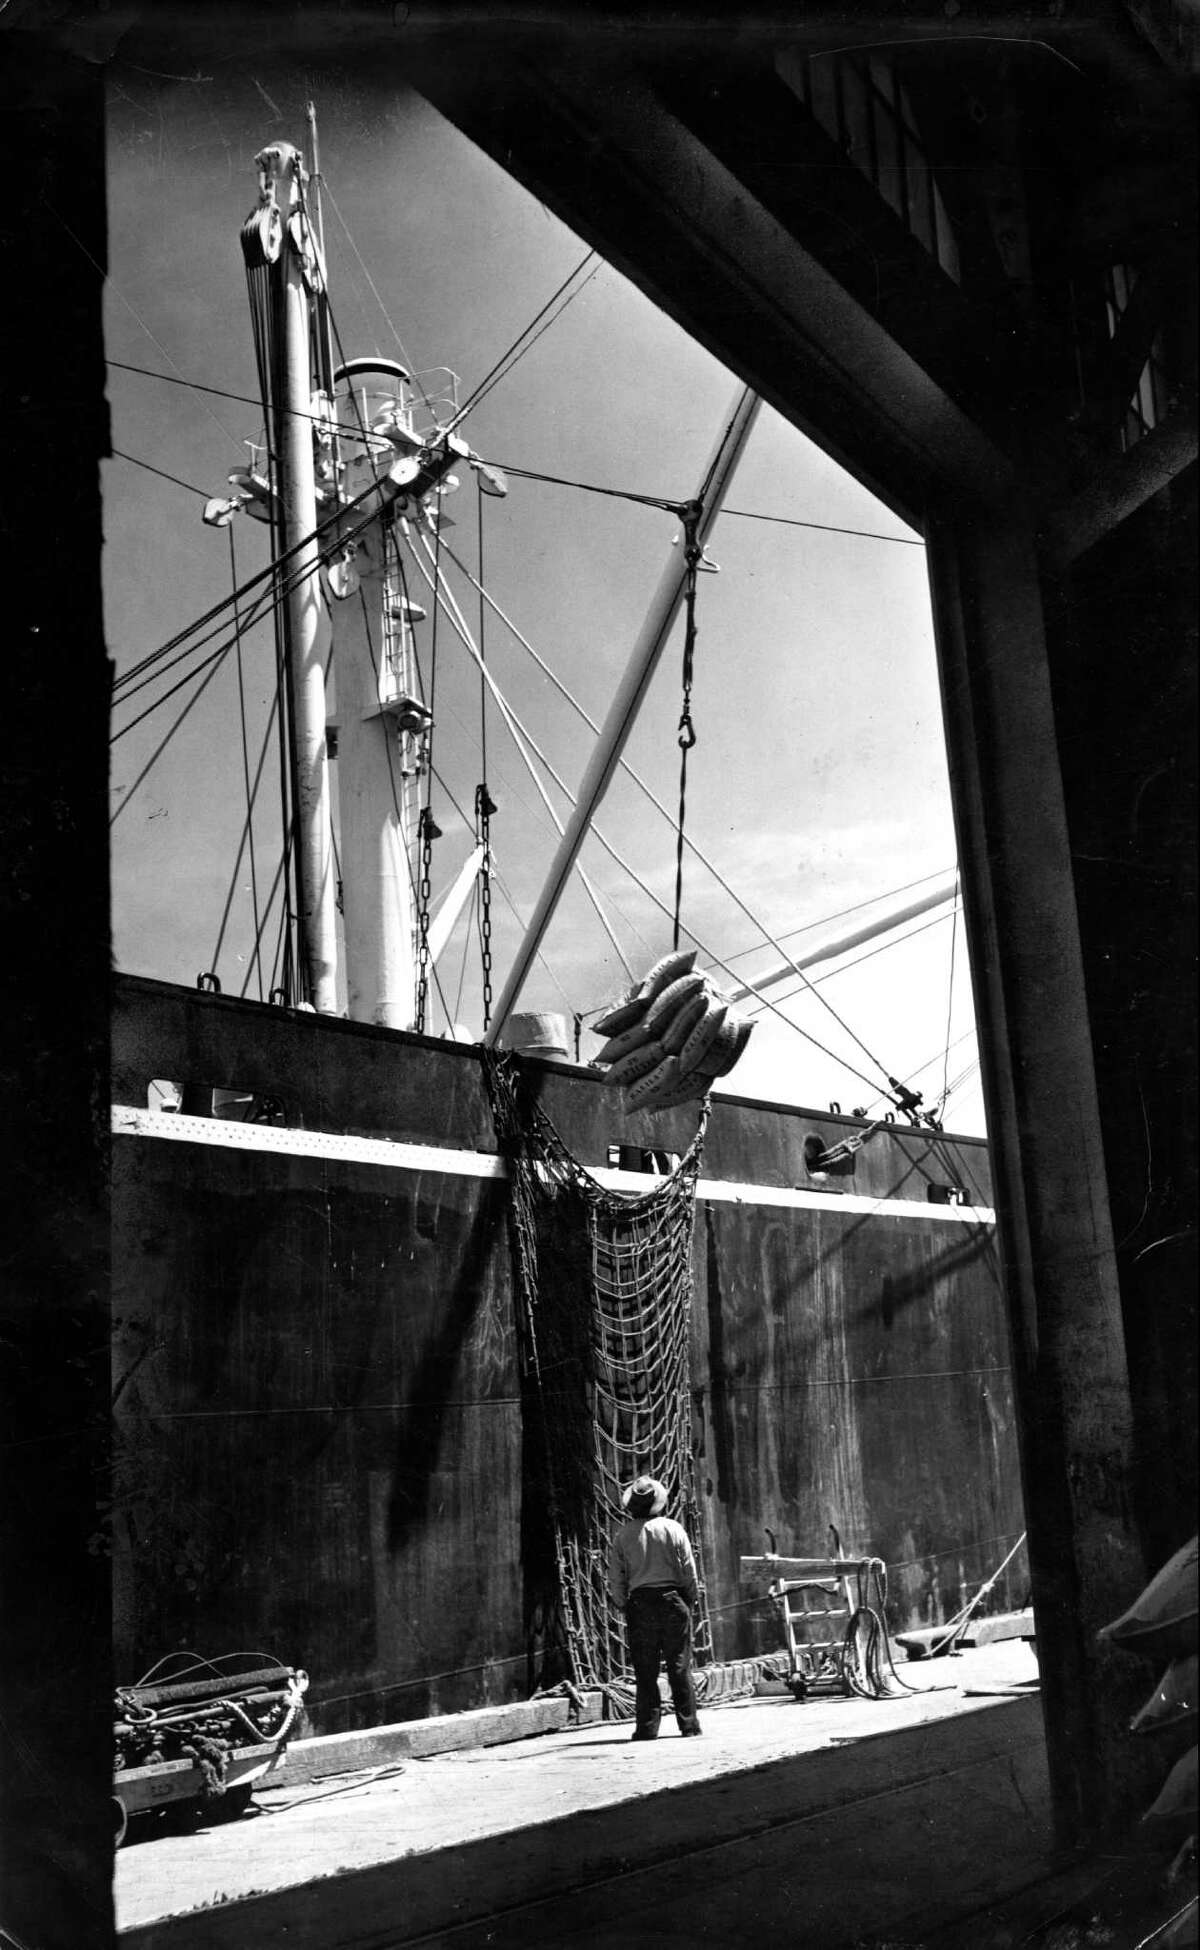 May 12, 1954: ship being loaded with cargo on the waterfront photo ran 05/18/1954 world trade section p. 1